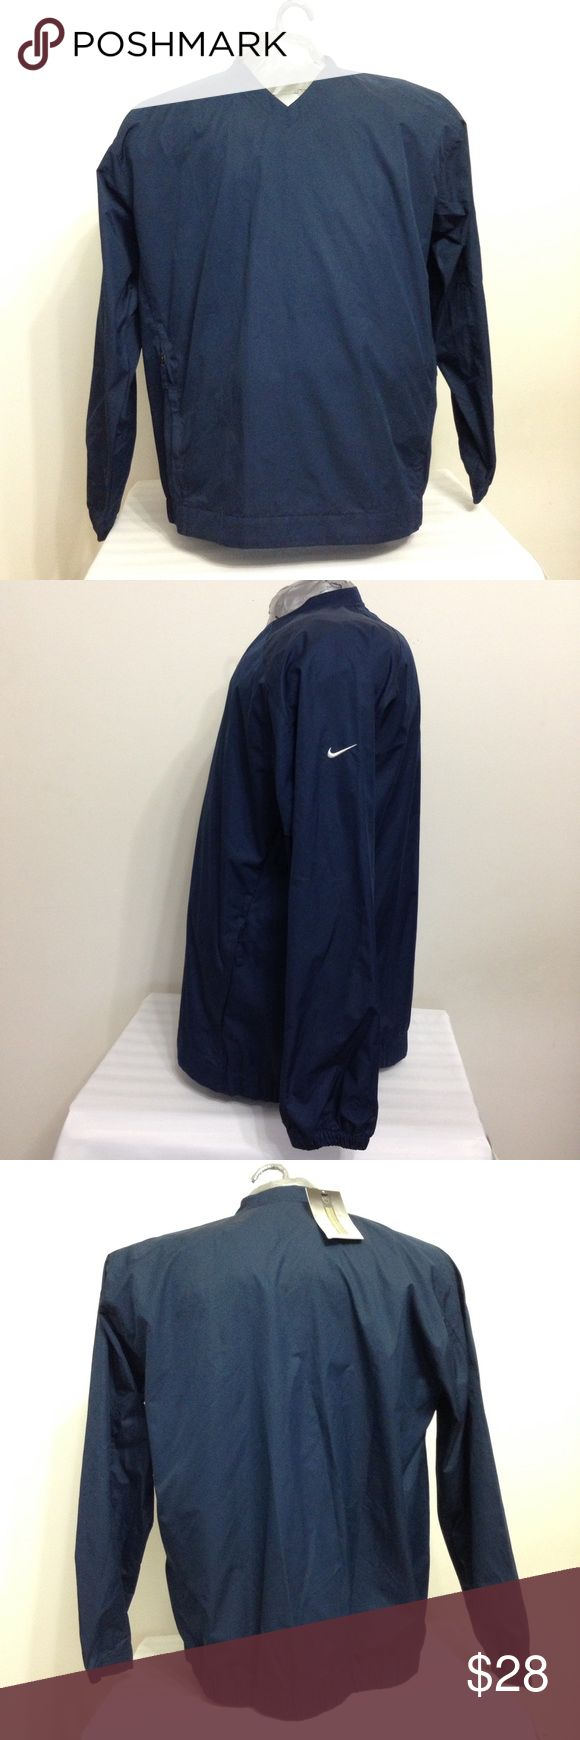 ✔️Nike golf CLIMA FIT Windbreaker Jacket Navy Blue ✔️Nike golf CLIMA FIT Men's Windbreaker Jacket Navy Blue. New With Tags Size XL. Made in Vietnam. Keep protected: CLIMA-FIT fabric blocks wind and resists rain. The fabric has spaces too small for water droplets to get in, yet is extremely breathable, allowing excess perspiration and body heat to escape. It has two side pockets with zipper. Nike Jackets & Coats Windbreakers